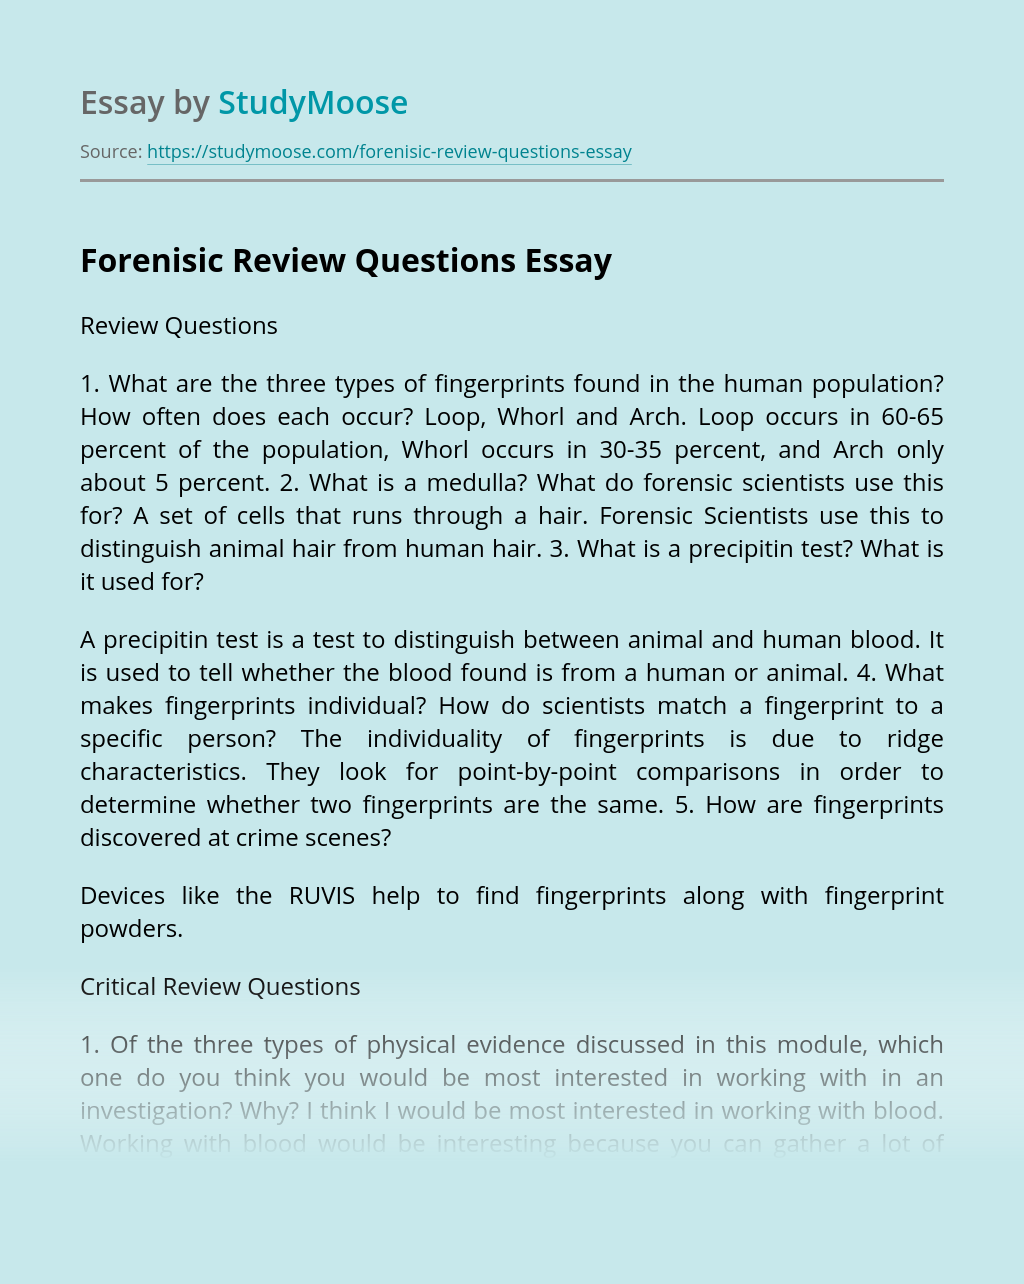 Forenisic Review Questions